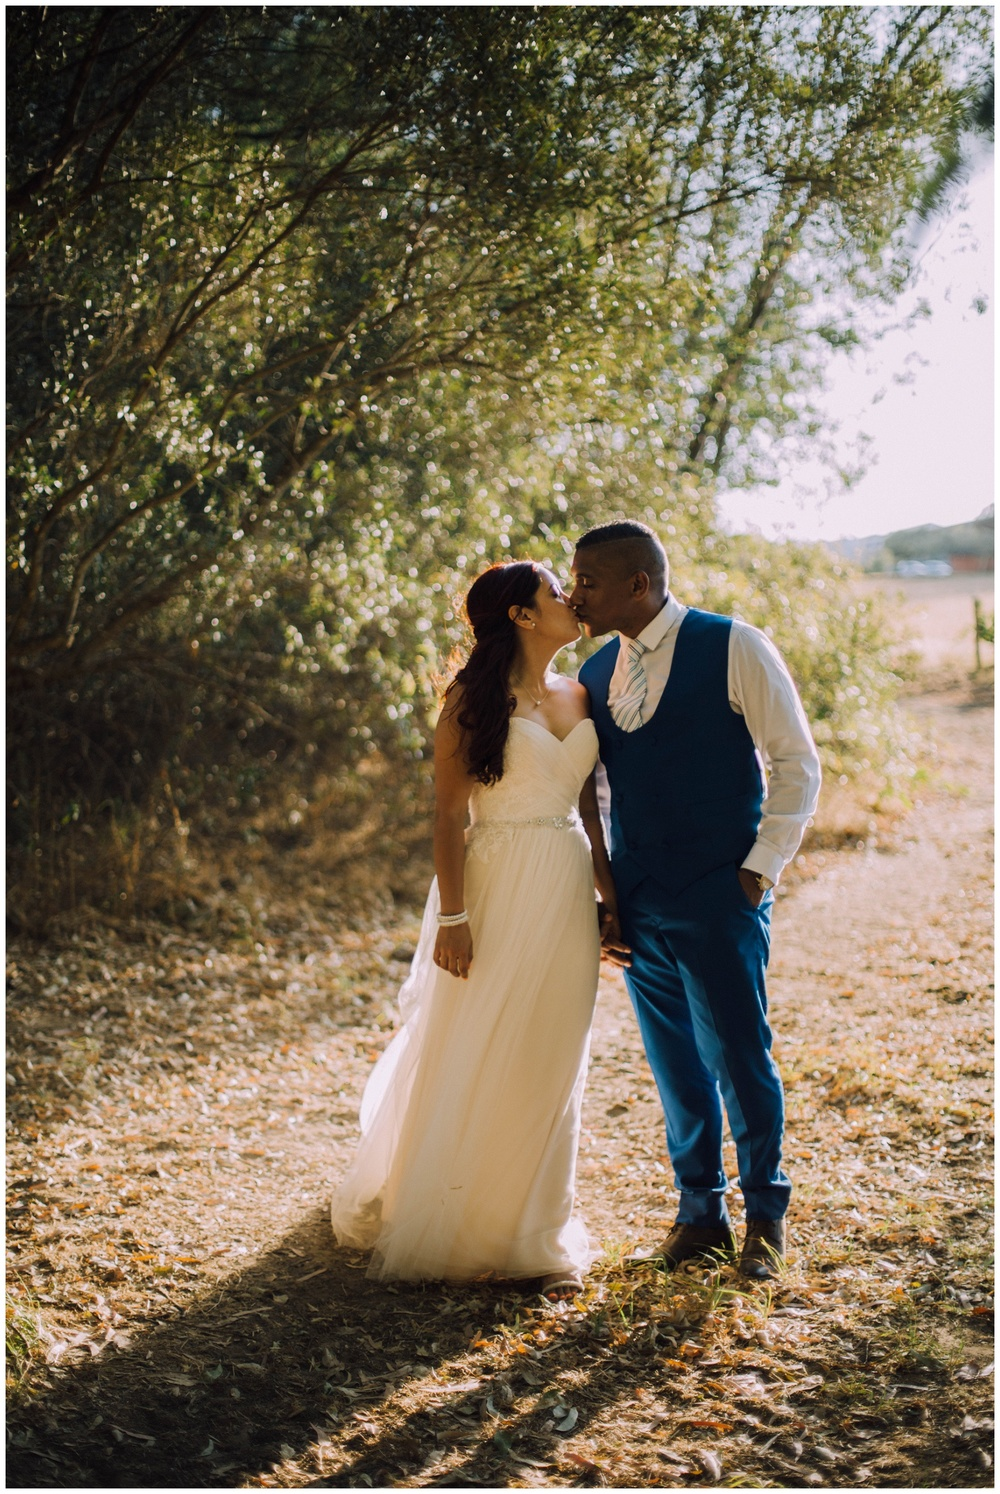 Ronel Kruger Cape Town Wedding and Lifestyle Photographer_1346.jpg